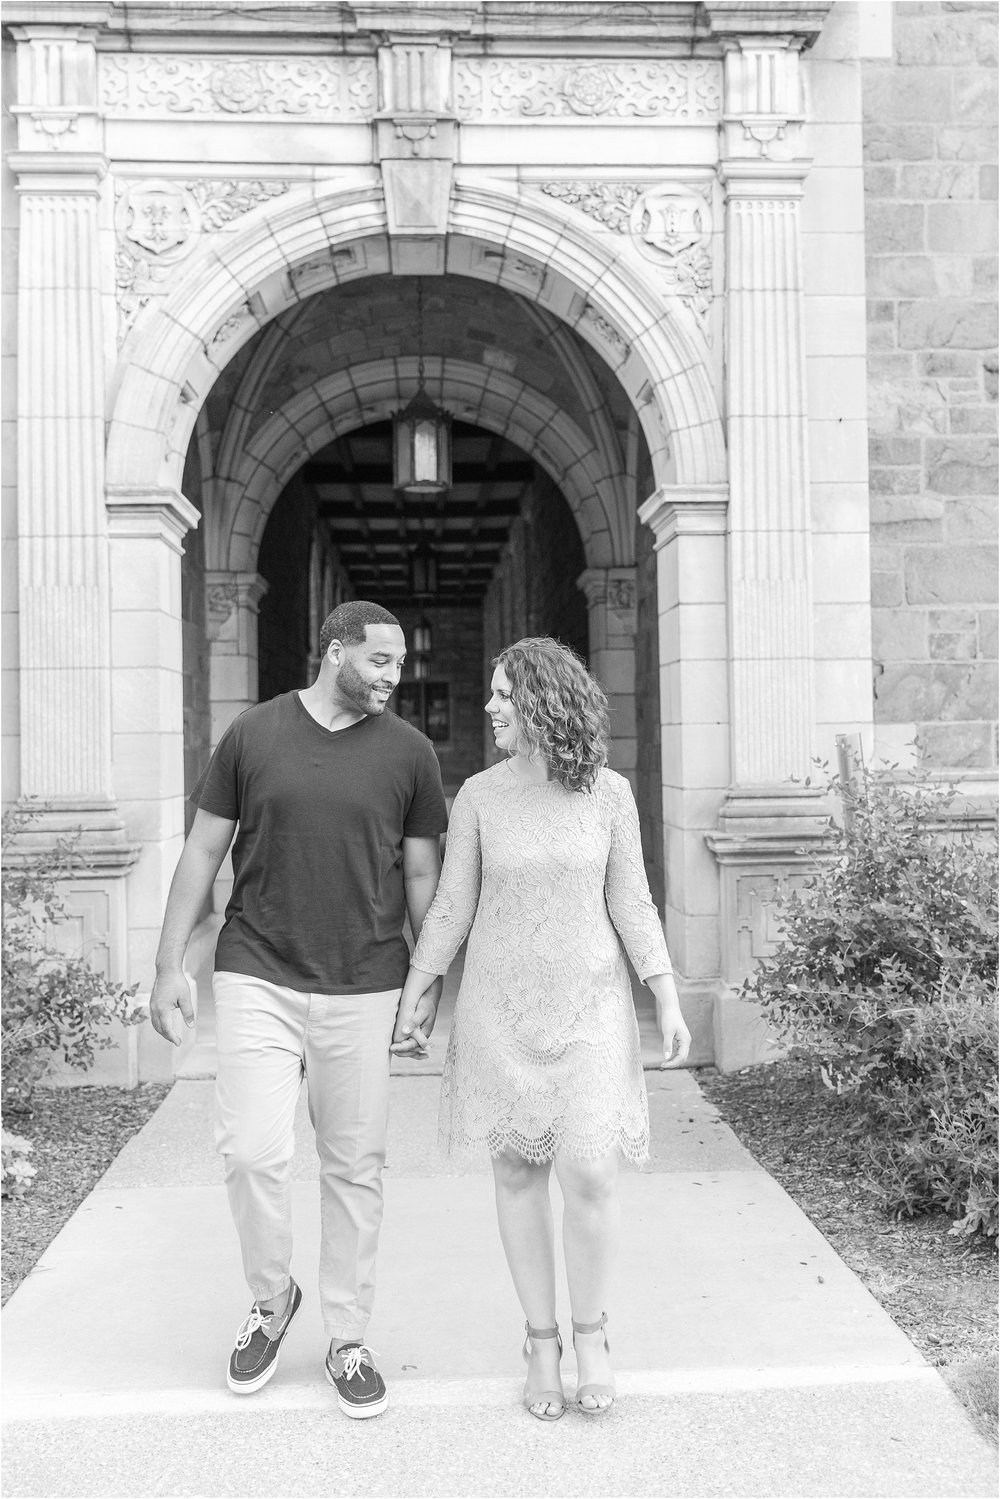 romantic-fun-university-of-michigan-engagement-photos-in-ann-arbor-mi-by-courtney-carolyn-photography_0027.jpg